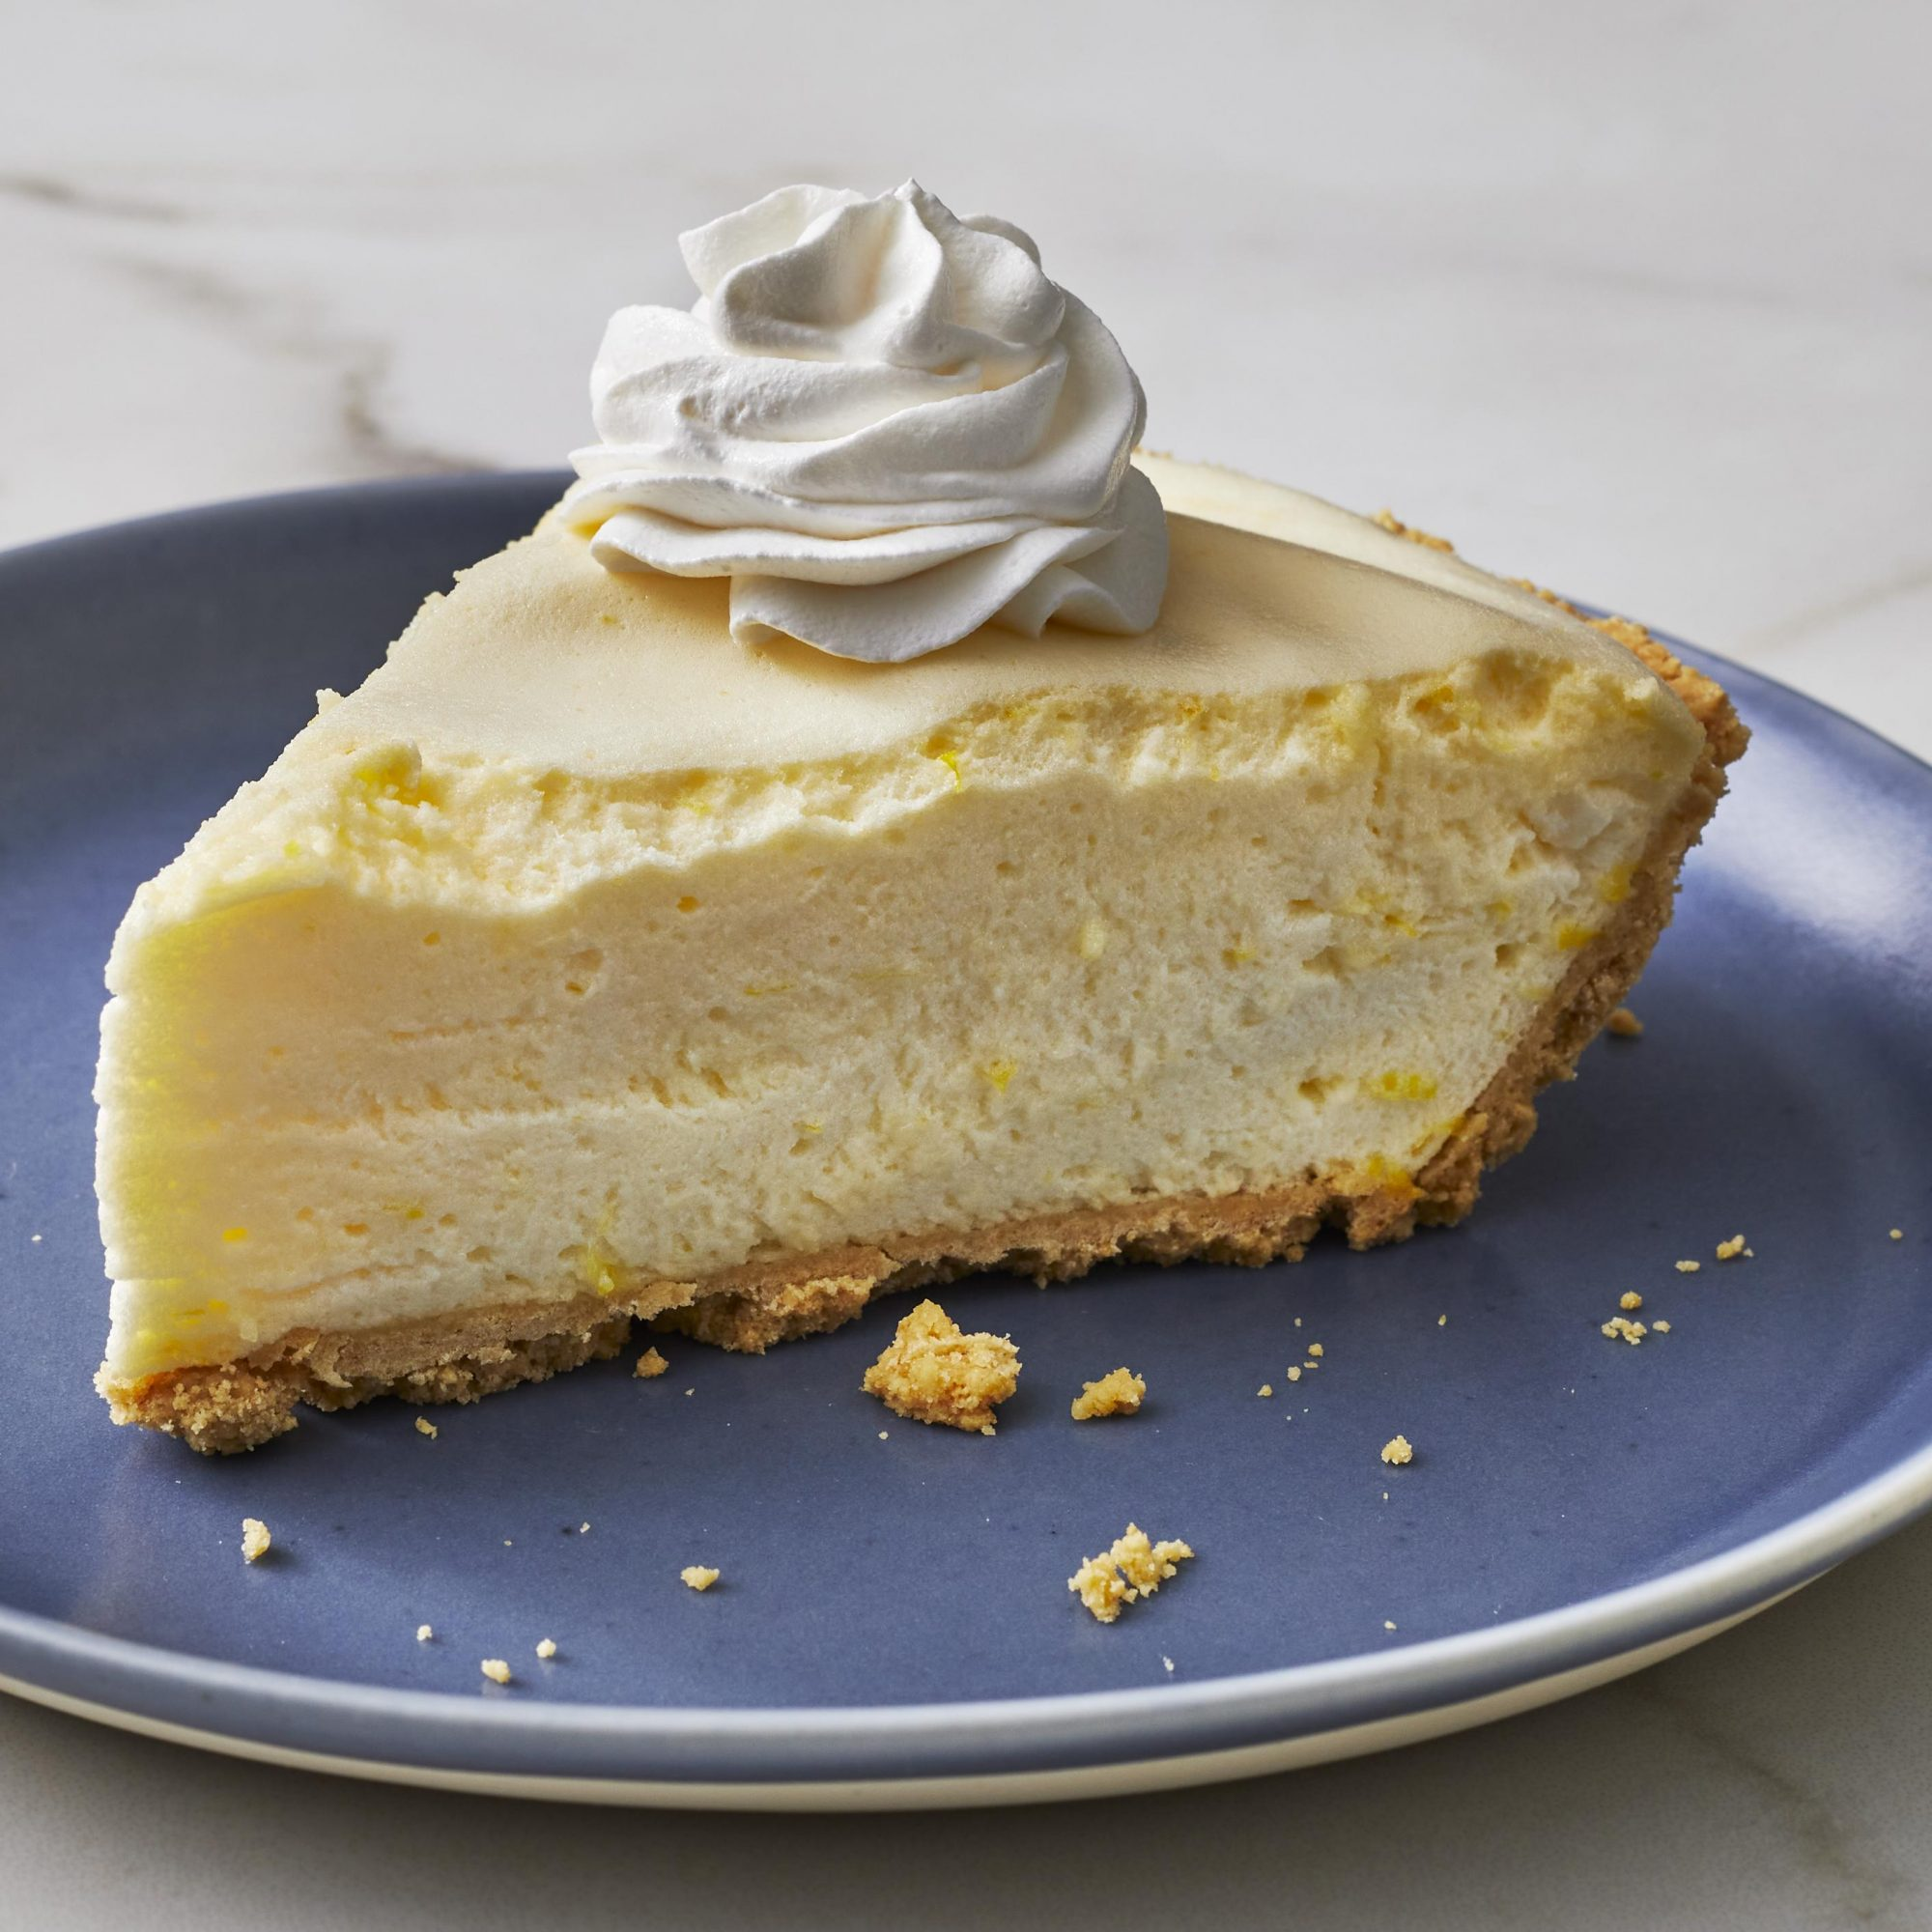 Slice of lemon chiffon pie with whipped cream